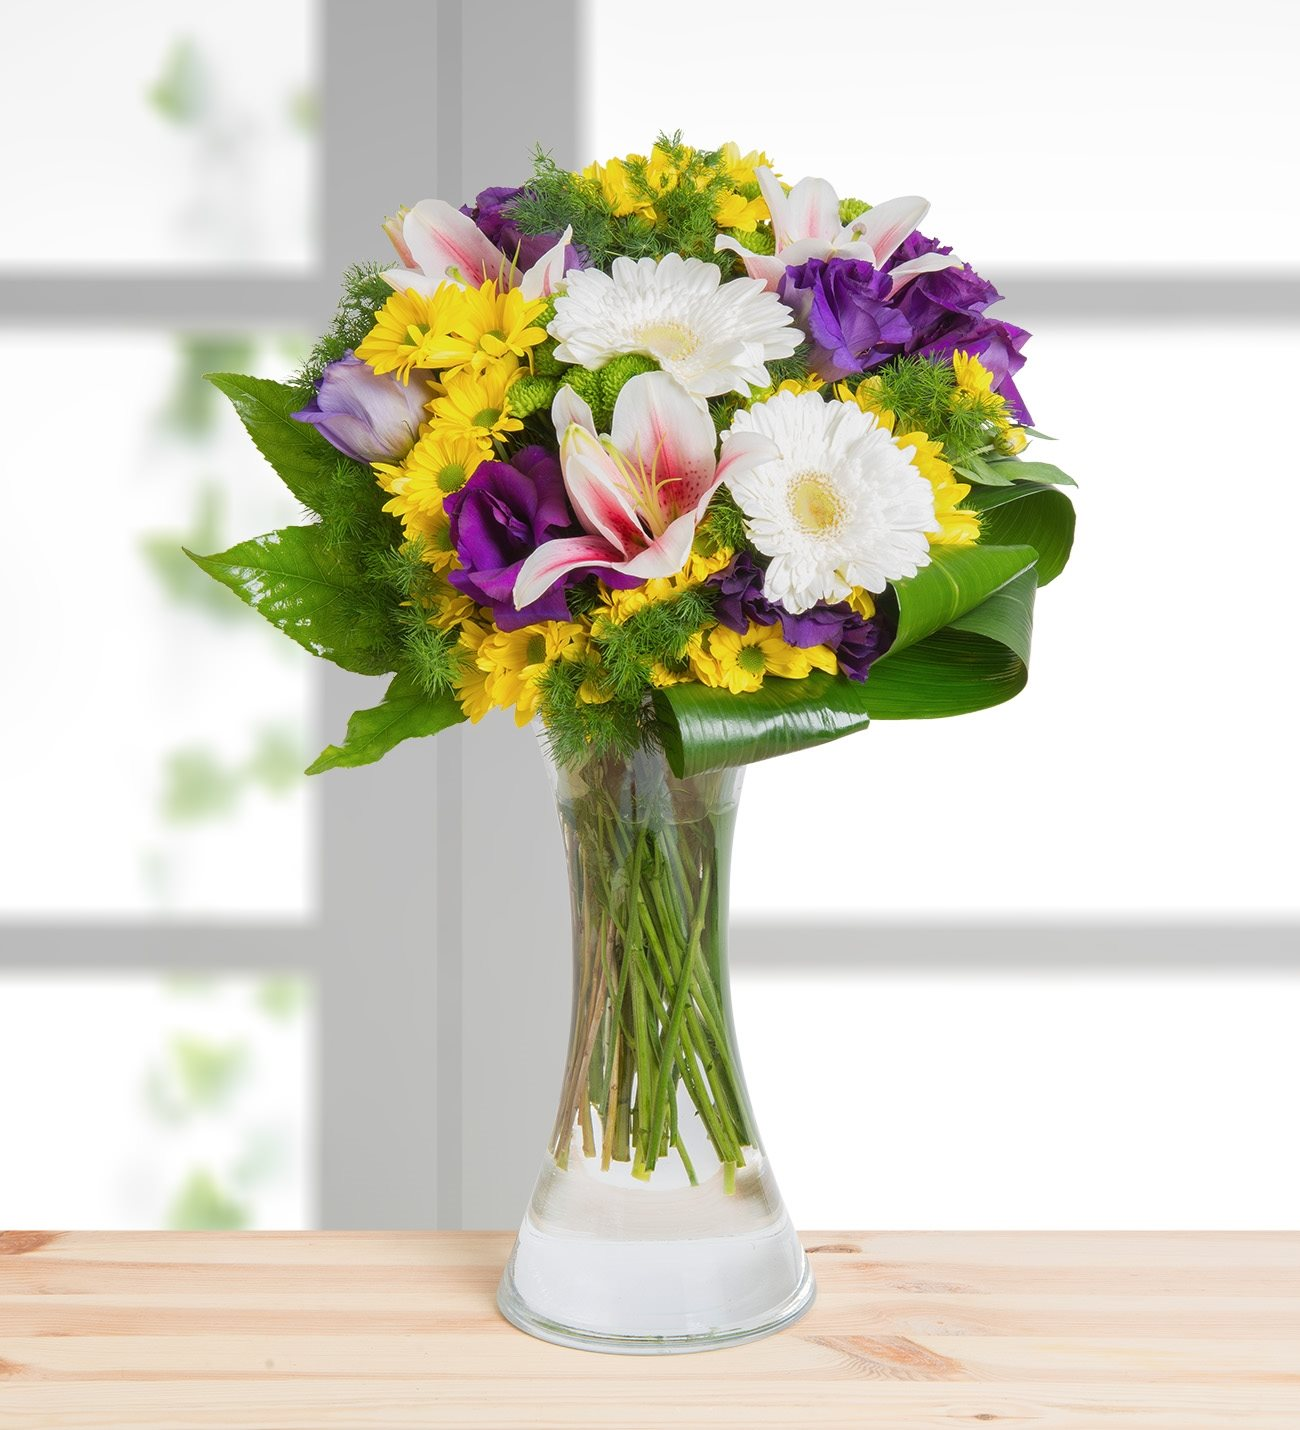 Lilies gerberas lisianthus and daisies symphony of colors izmirmasajfo